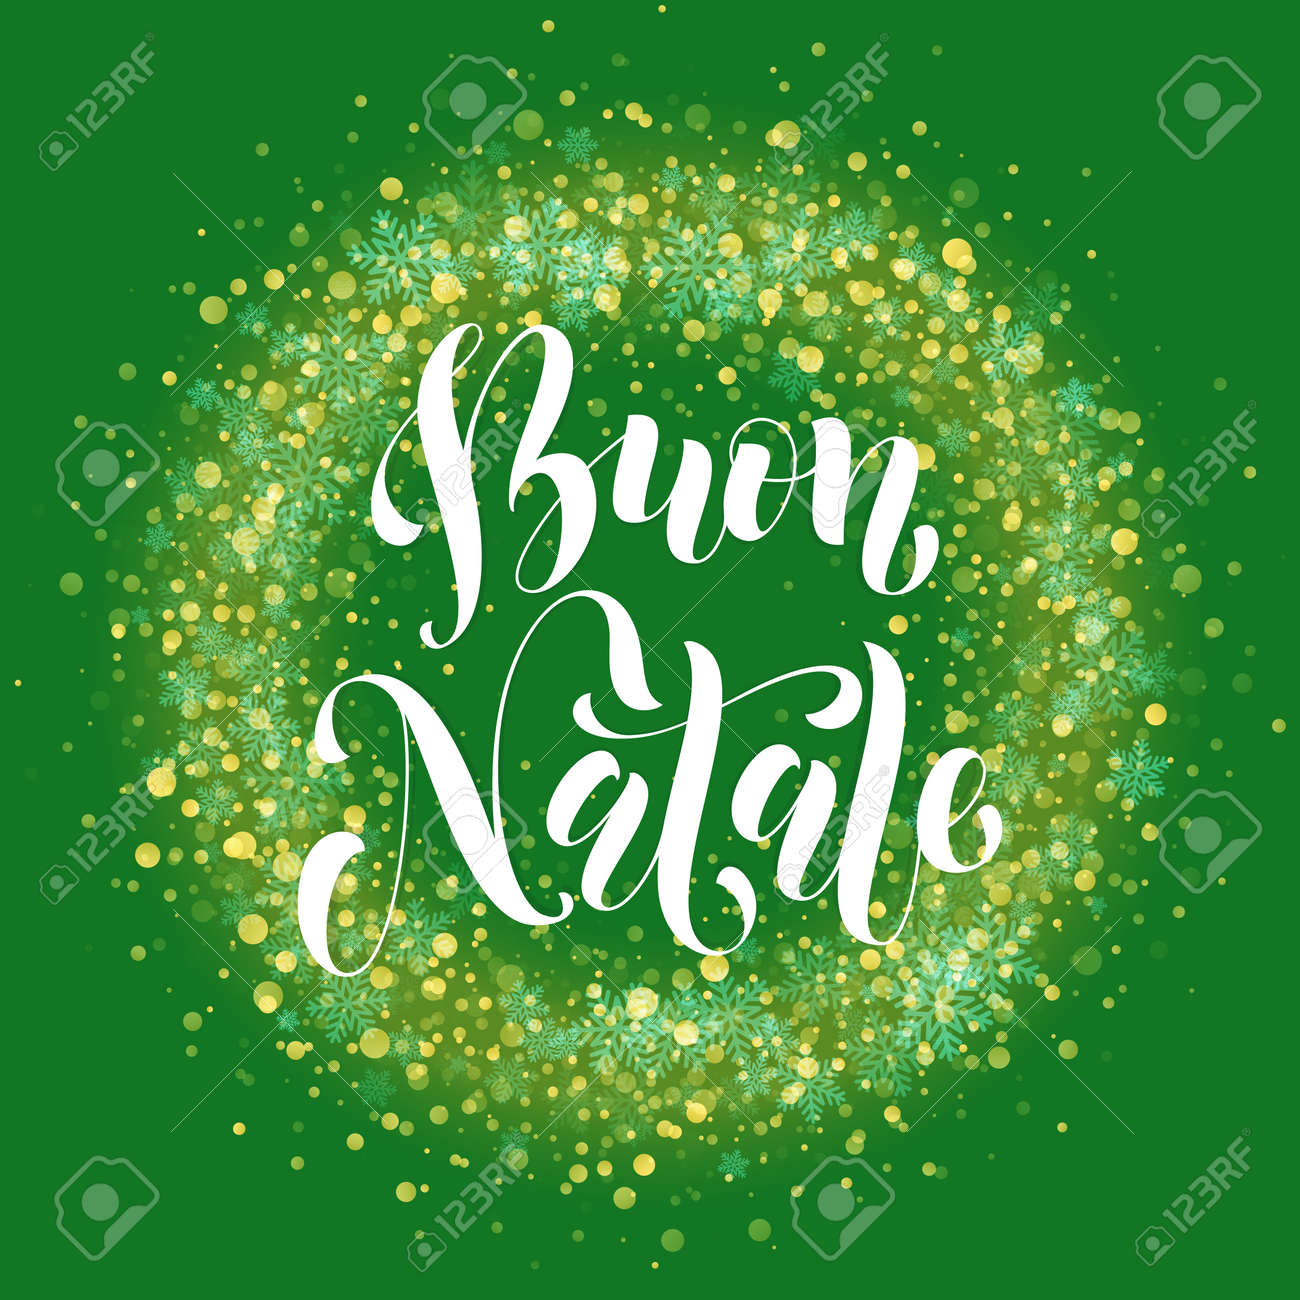 Buon Natale Glitter.Italian Merry Christmas Text Buon Natale Wreath Ornament Decoration Royalty Free Cliparts Vectors And Stock Illustration Image 66973450